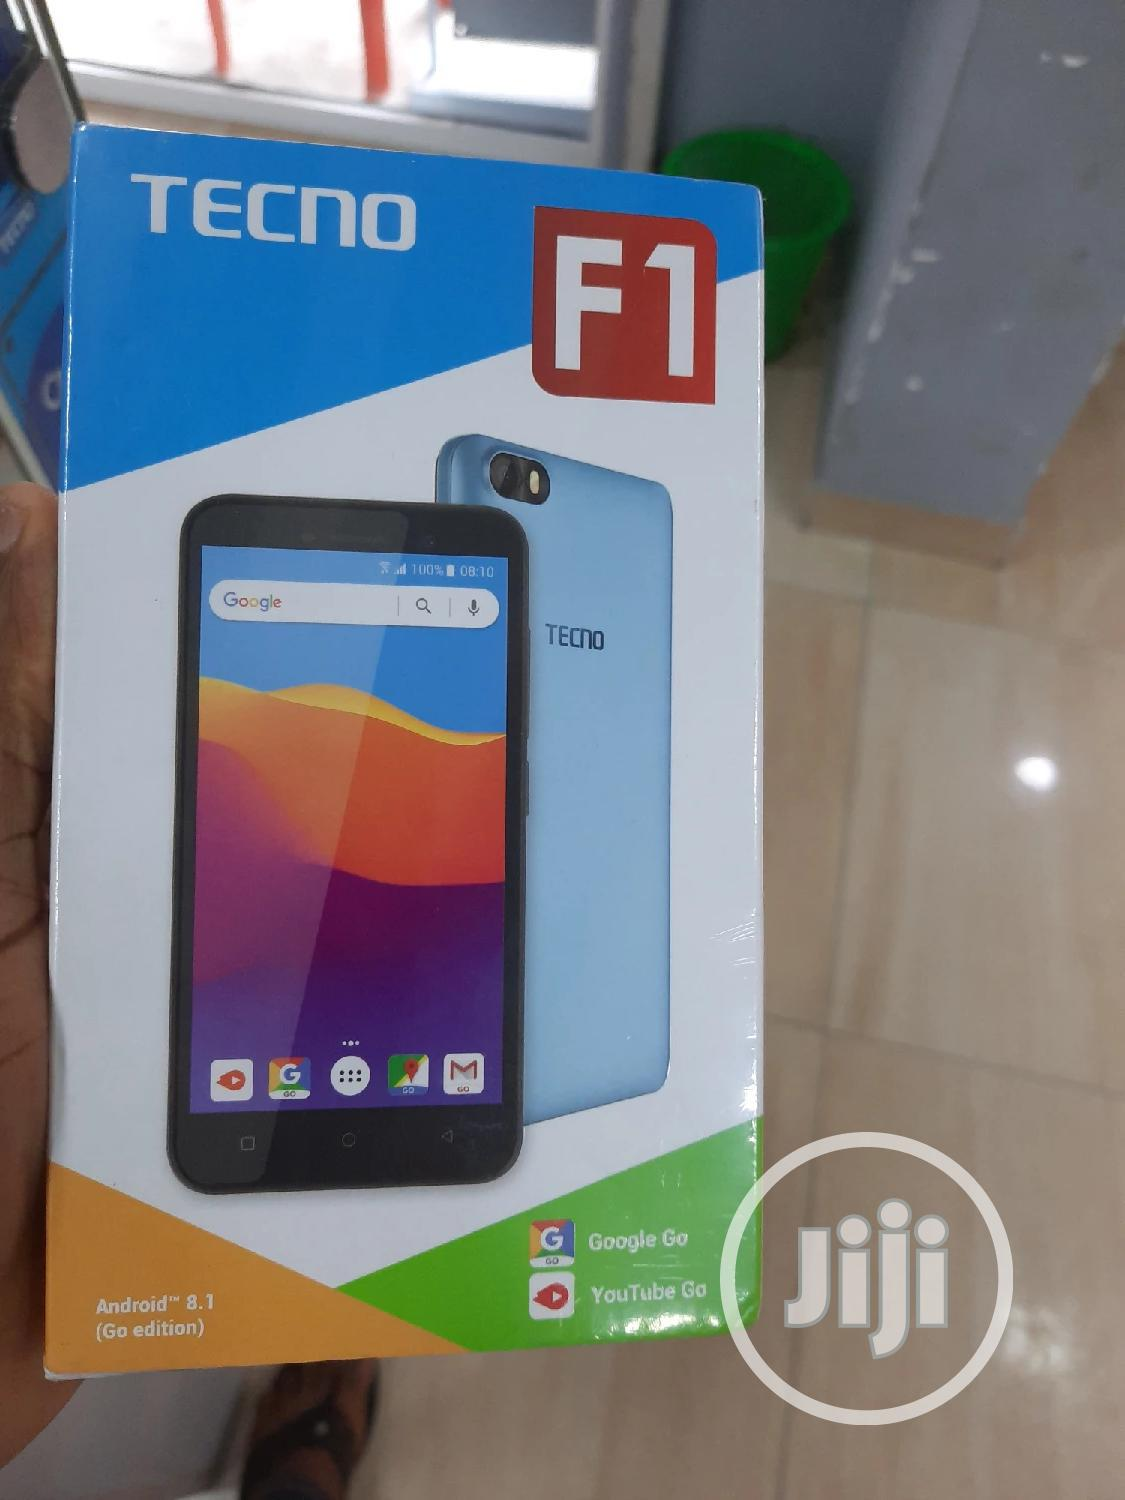 New Tecno F1 8 GB | Mobile Phones for sale in Port-Harcourt, Rivers State, Nigeria